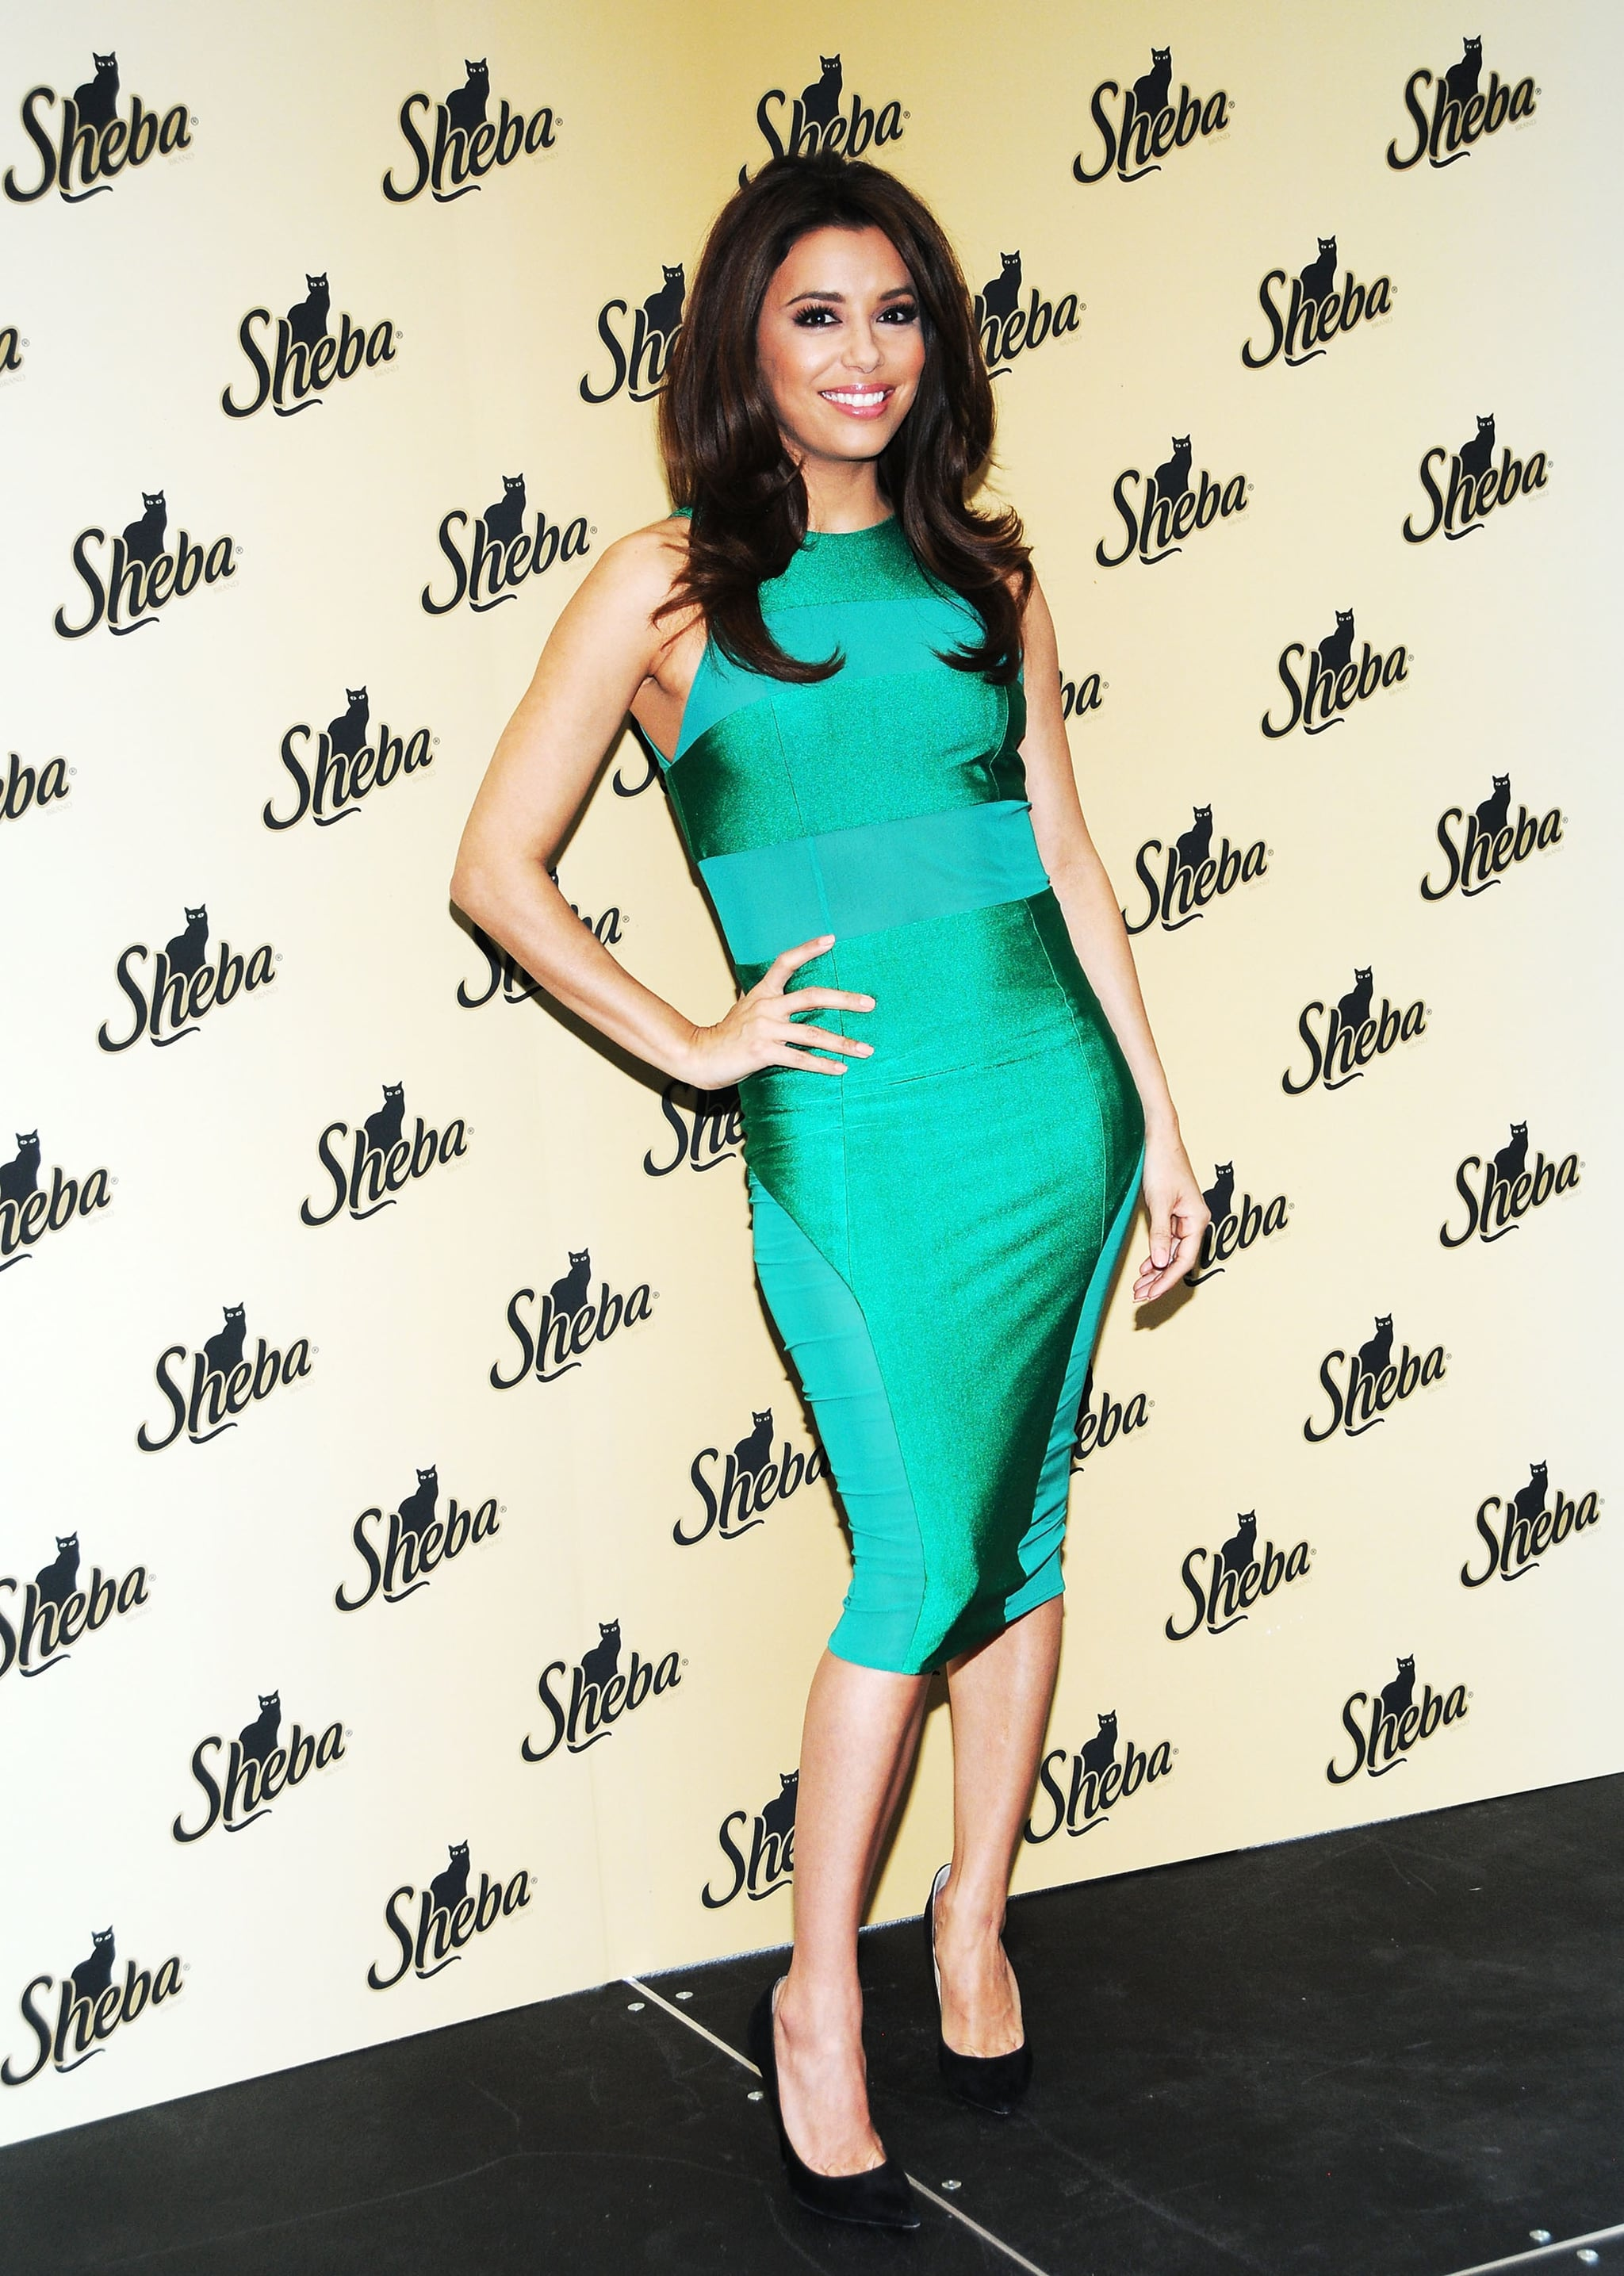 For a 2013 Sheba event, Eva Longoria showed off her toned figure in a emerald paneled sheath paired with suede Jimmy Choo pumps and sparkling Martin Katz jewels.